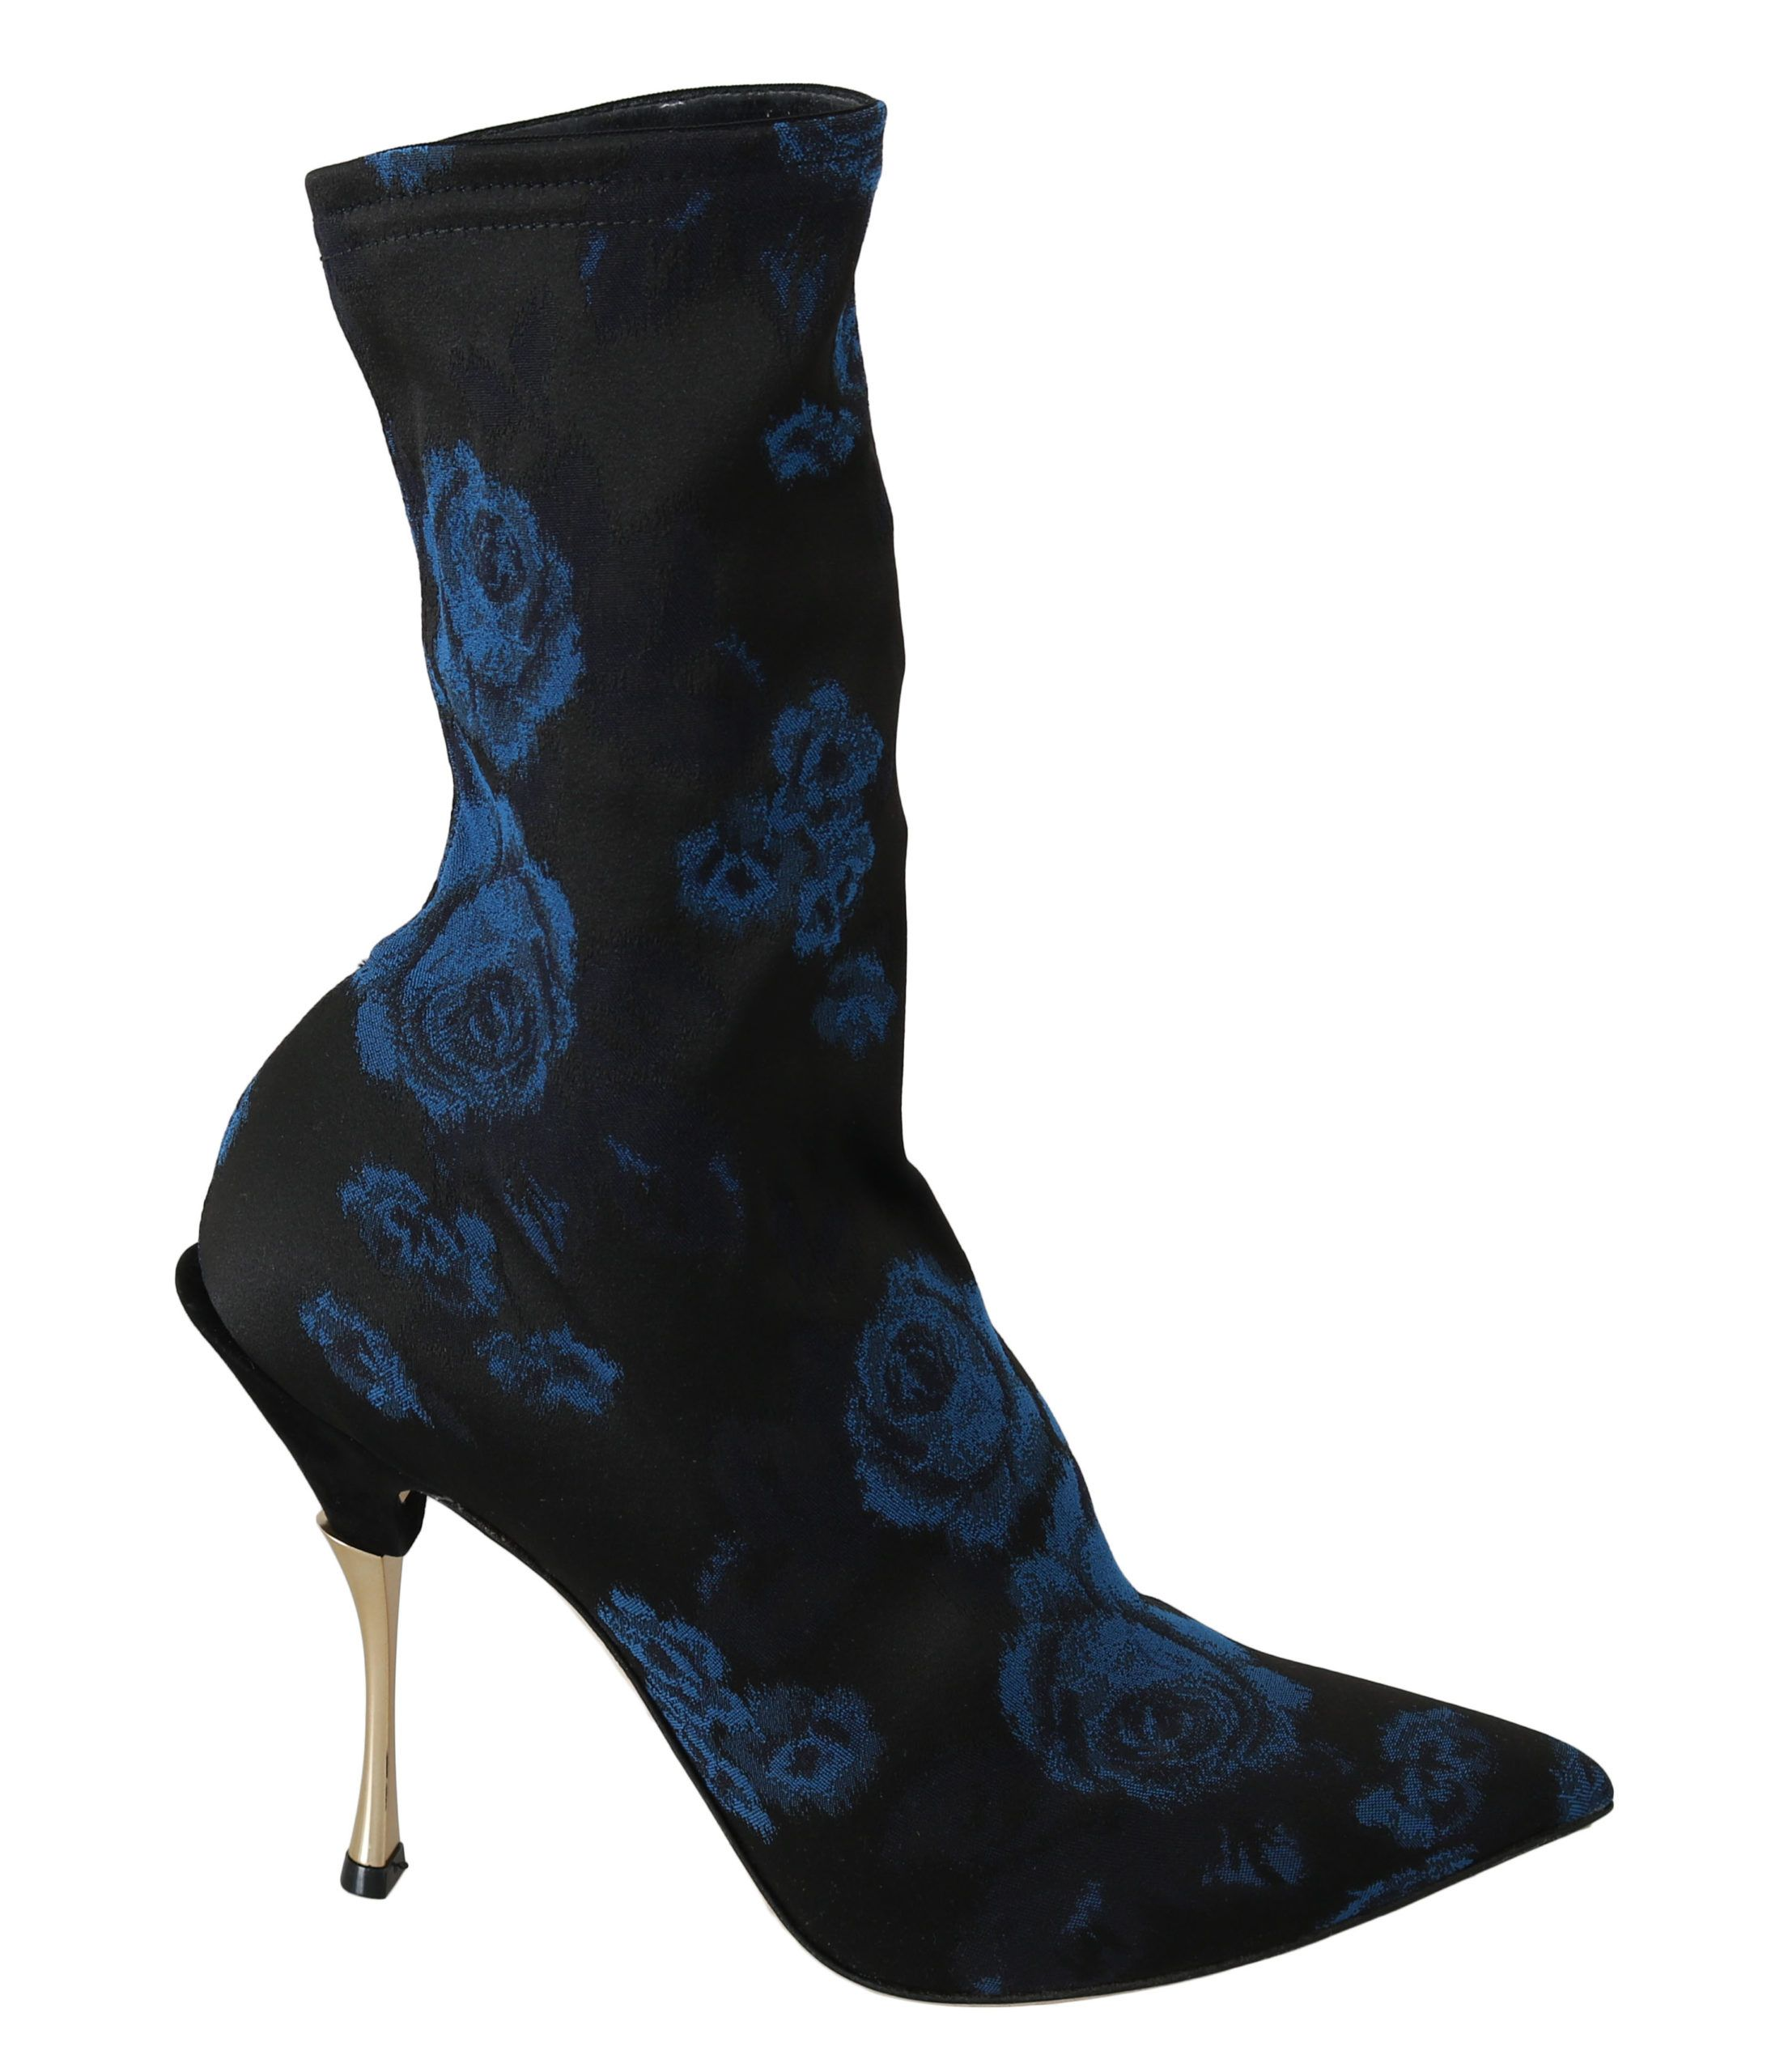 Dolce & Gabbana Black Stretch Blue Roses Ankle Boots Shoes